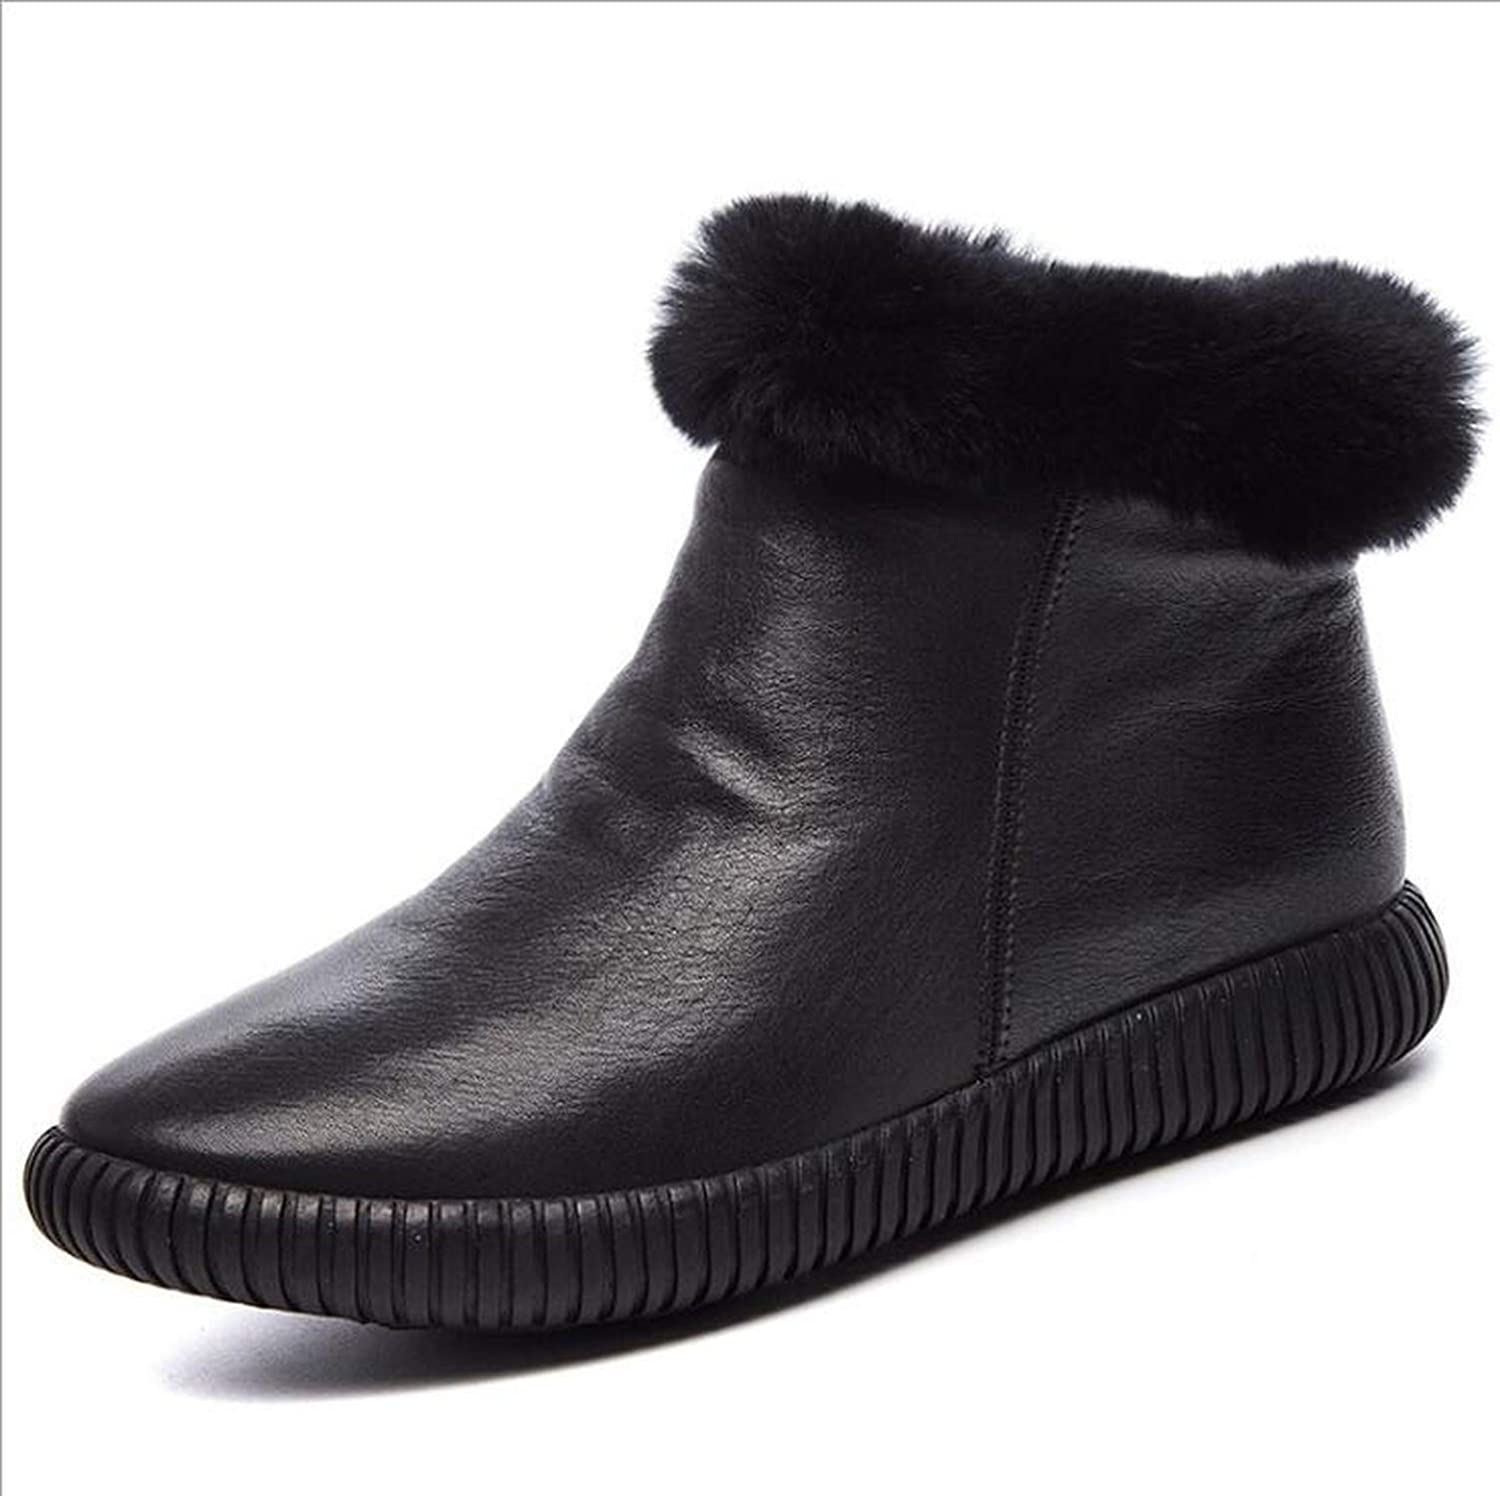 Leather Snow Boots Women's Boots Rabbit Hair Winter Boots for Women Warm shoes